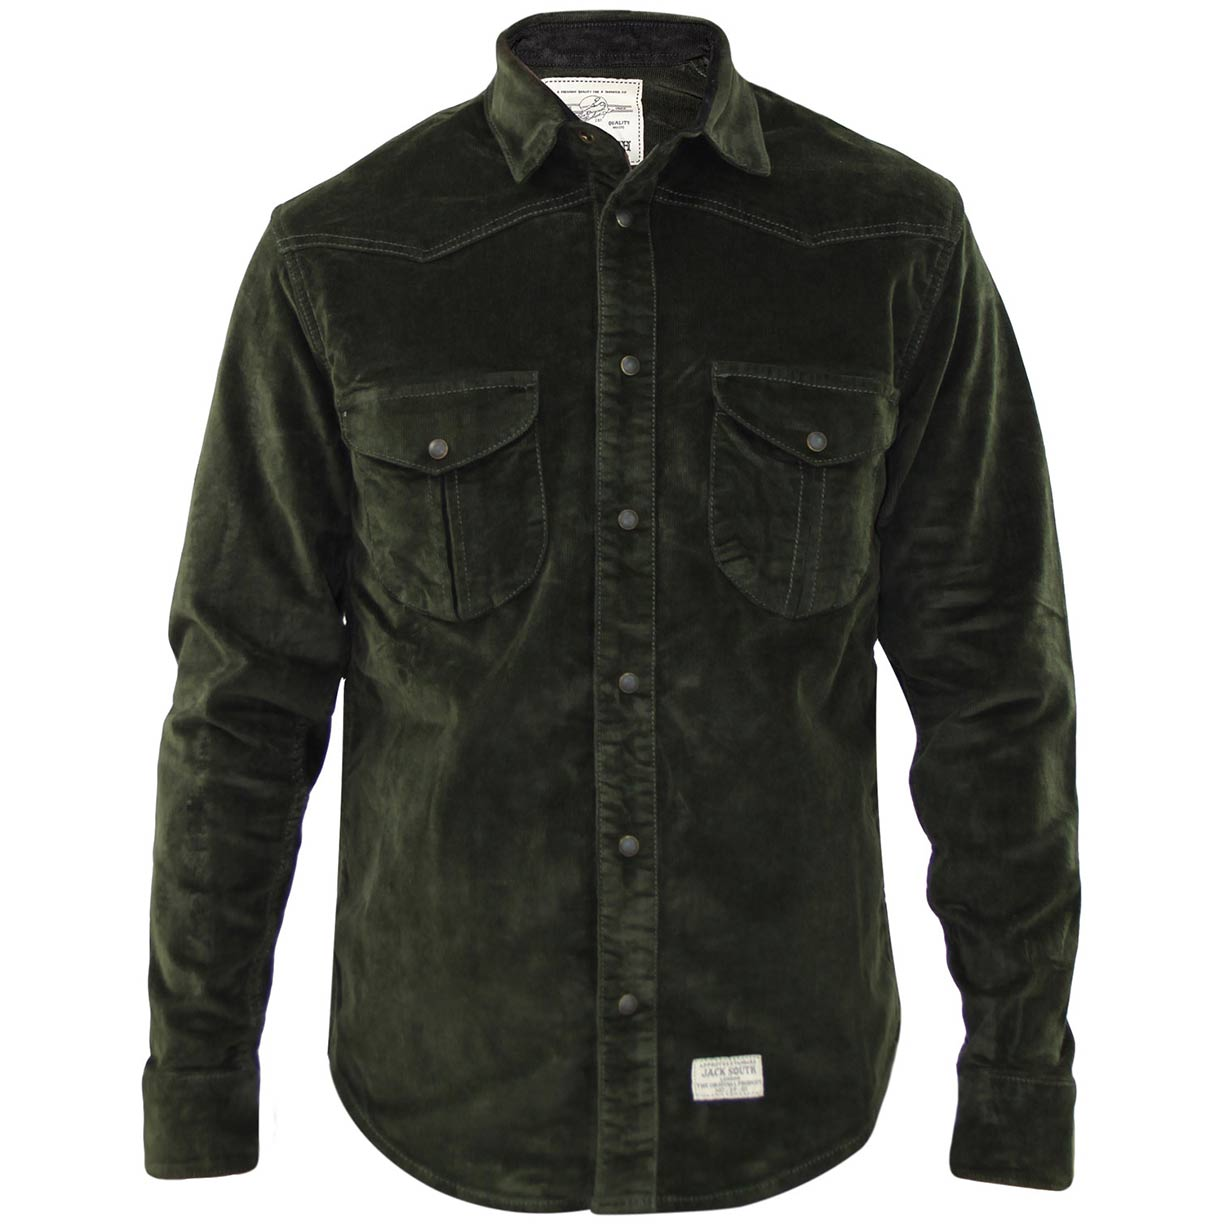 Jack South Shirt Soria Green